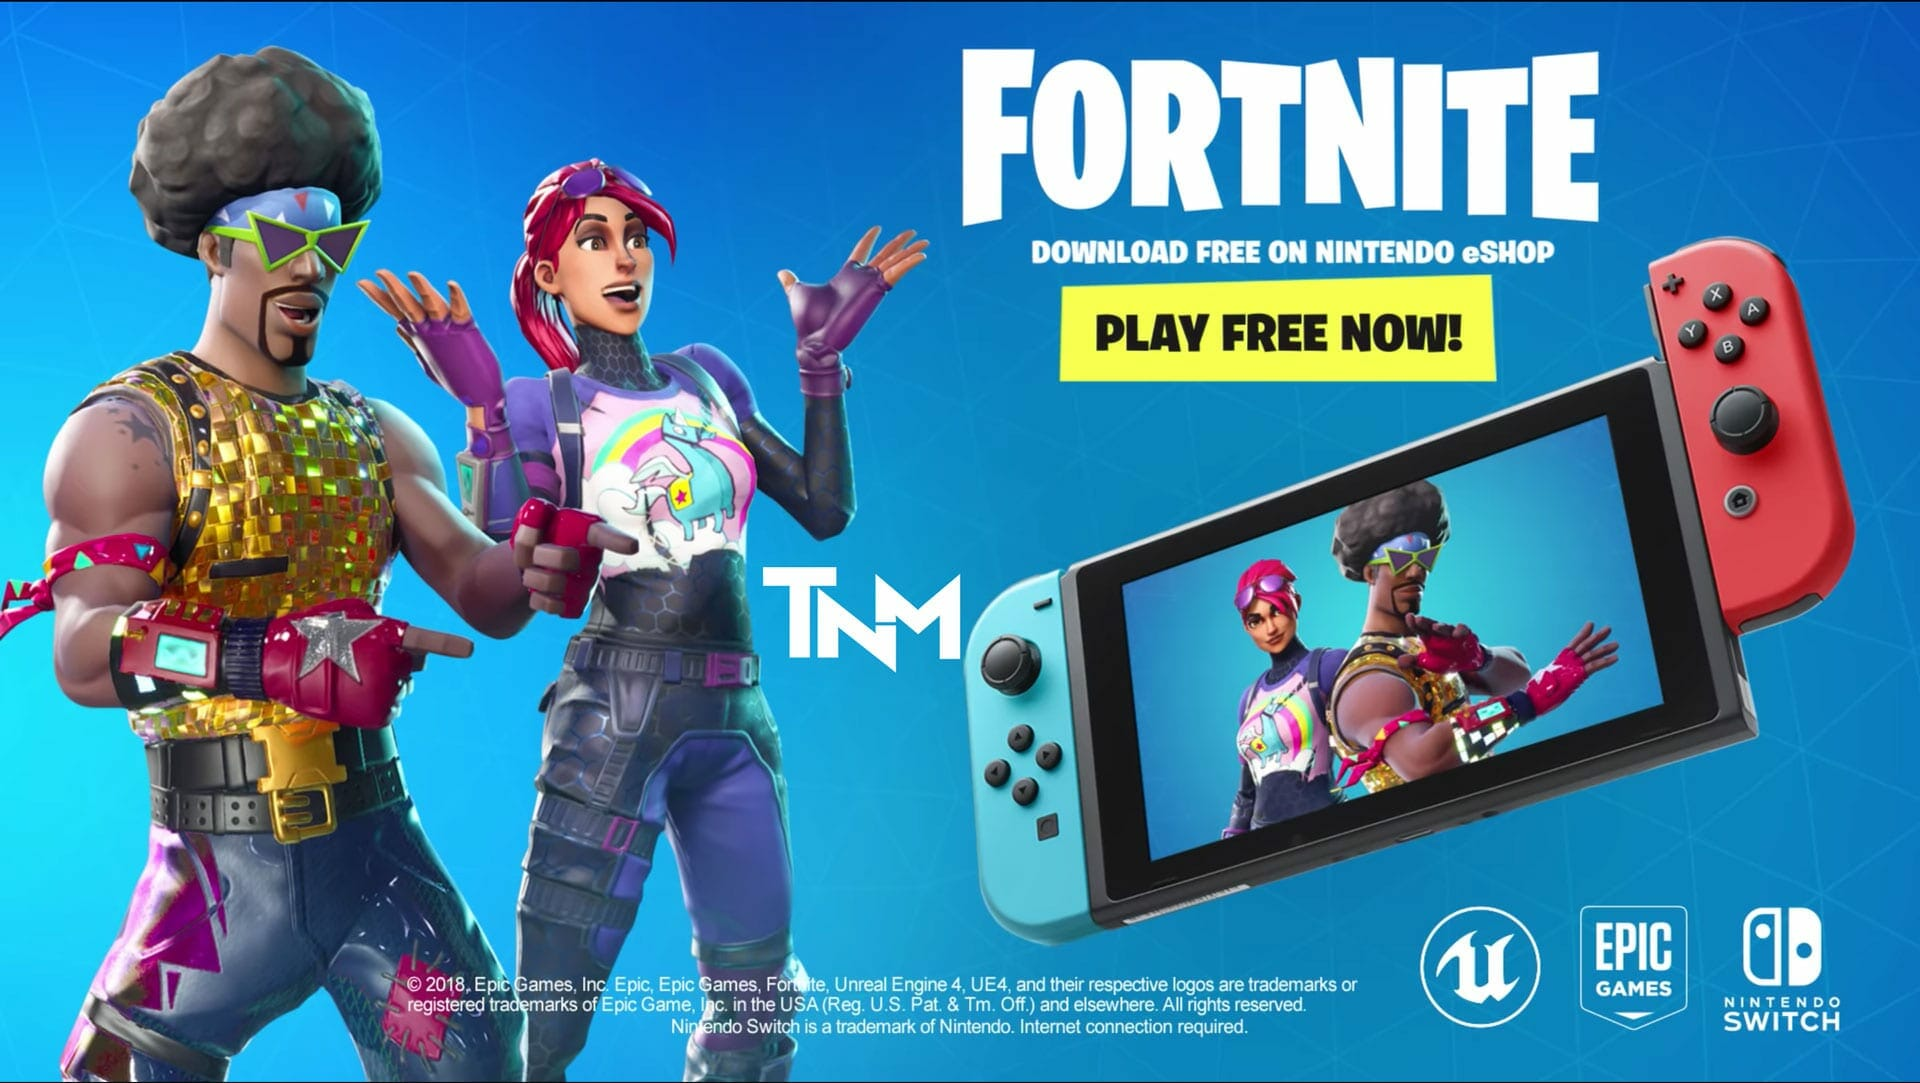 Sony isn't budging on Fortnite cross-platform play